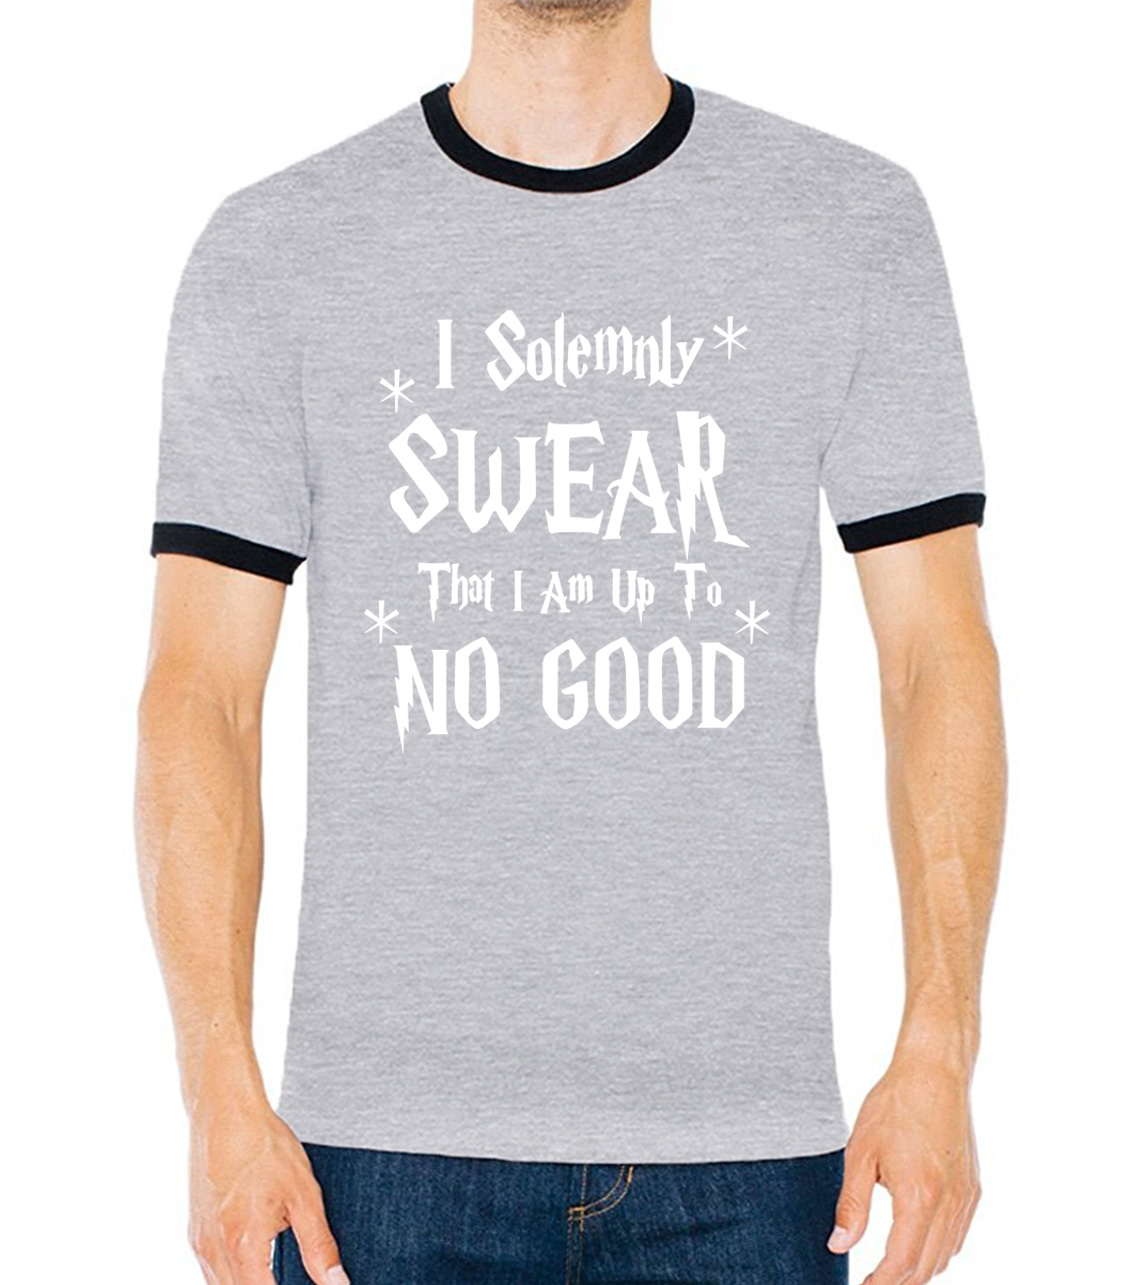 e8162611a I Solemnly Swear That I Am Up To No Good camiseta t shirt hip hop hit  collar tops men 2017 fitness contrast color brand clothing-in T-Shirts from  Men's ...